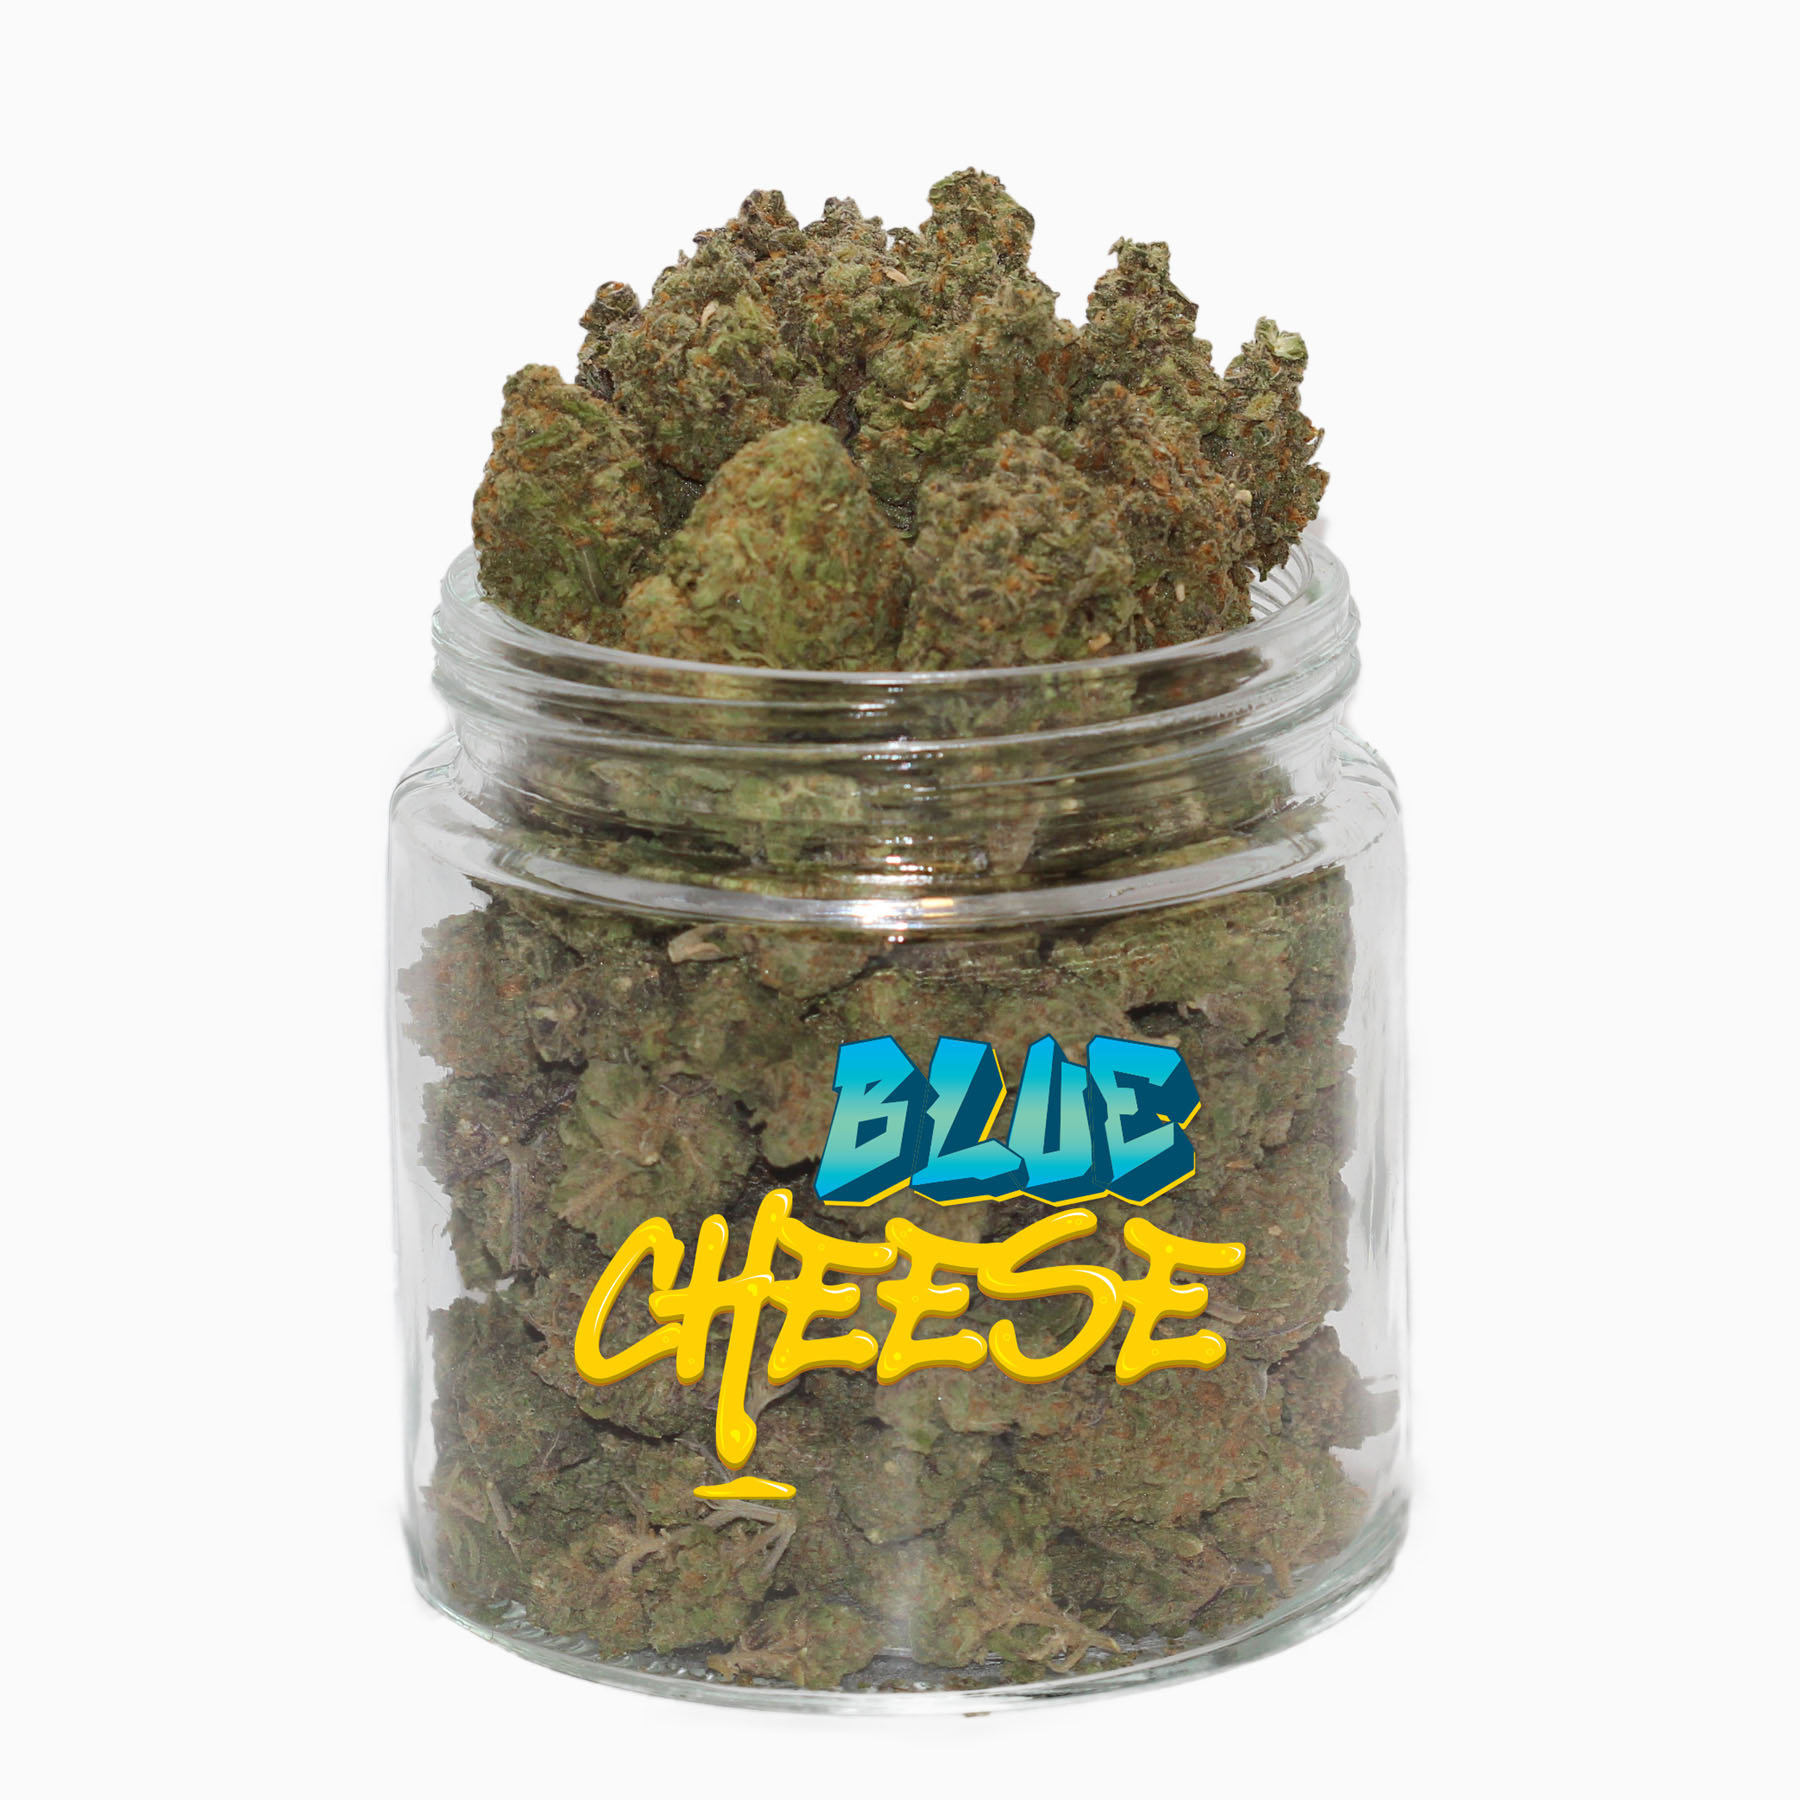 Blue Cheese by Get Kush - Image © 2018 Get Kush. All Rights Reserved.